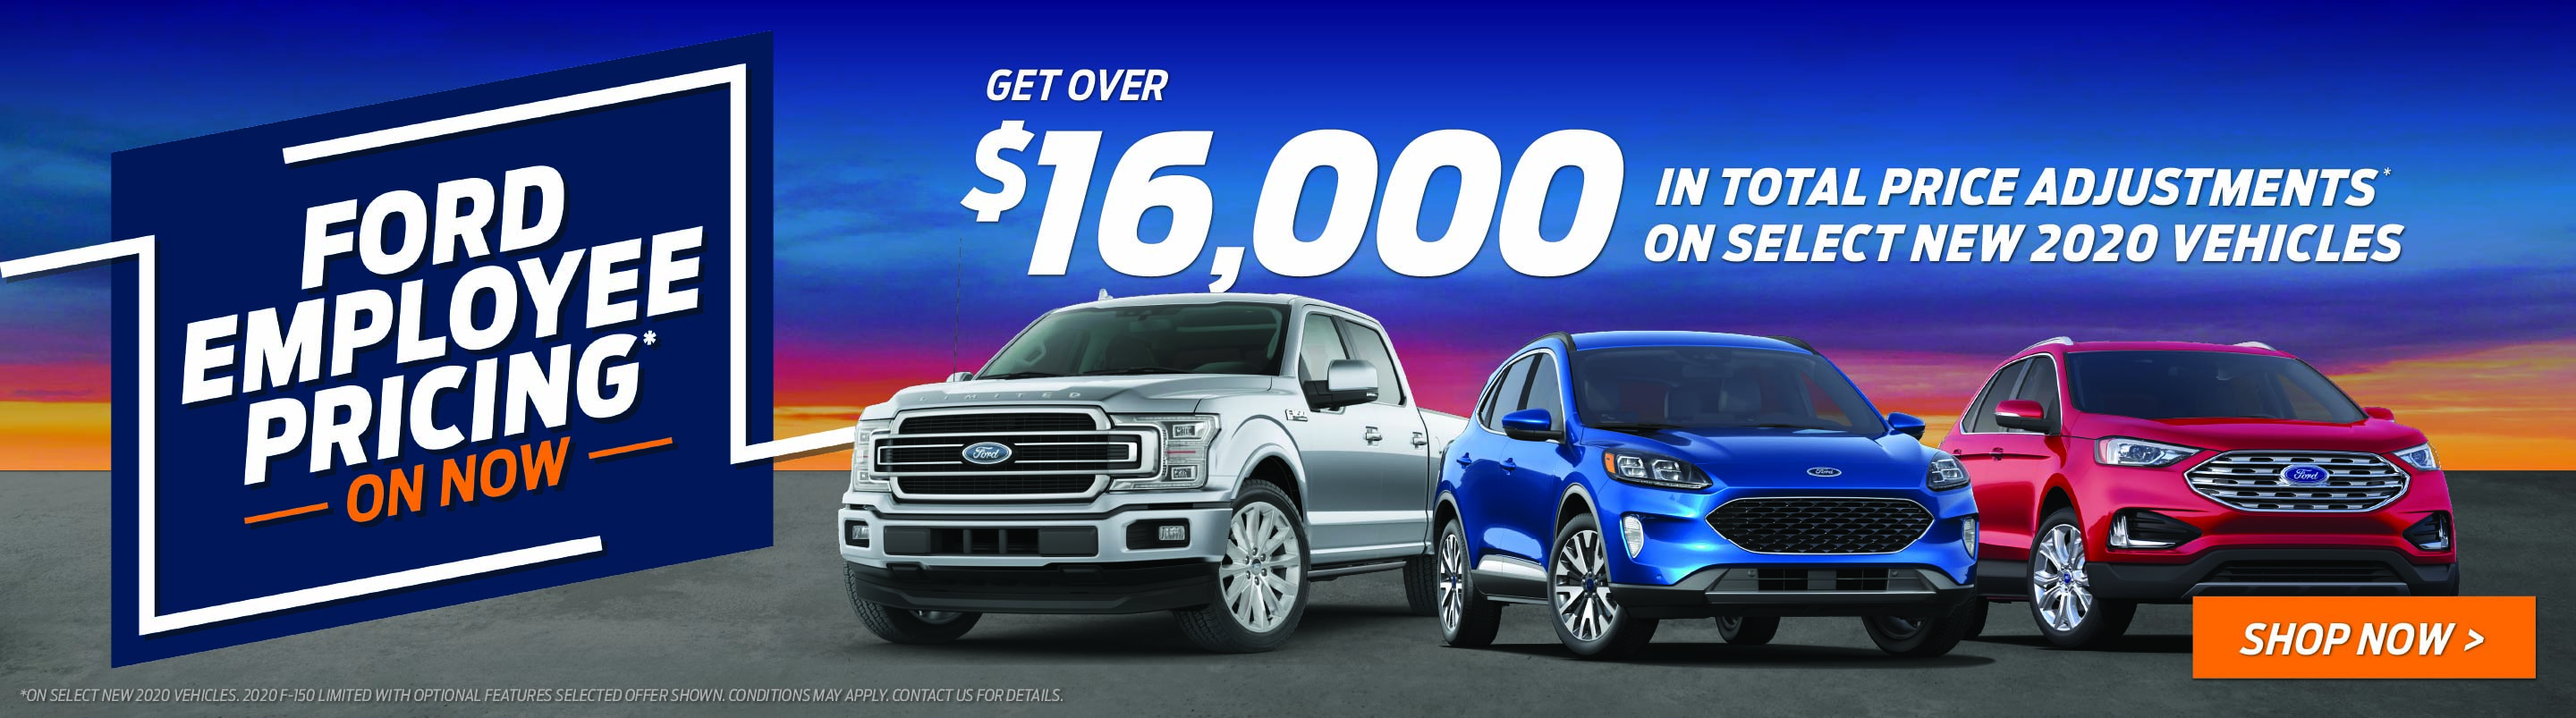 Ford_Employee_Pricing_Bayfield_Ford_Barrie_DM_Slider